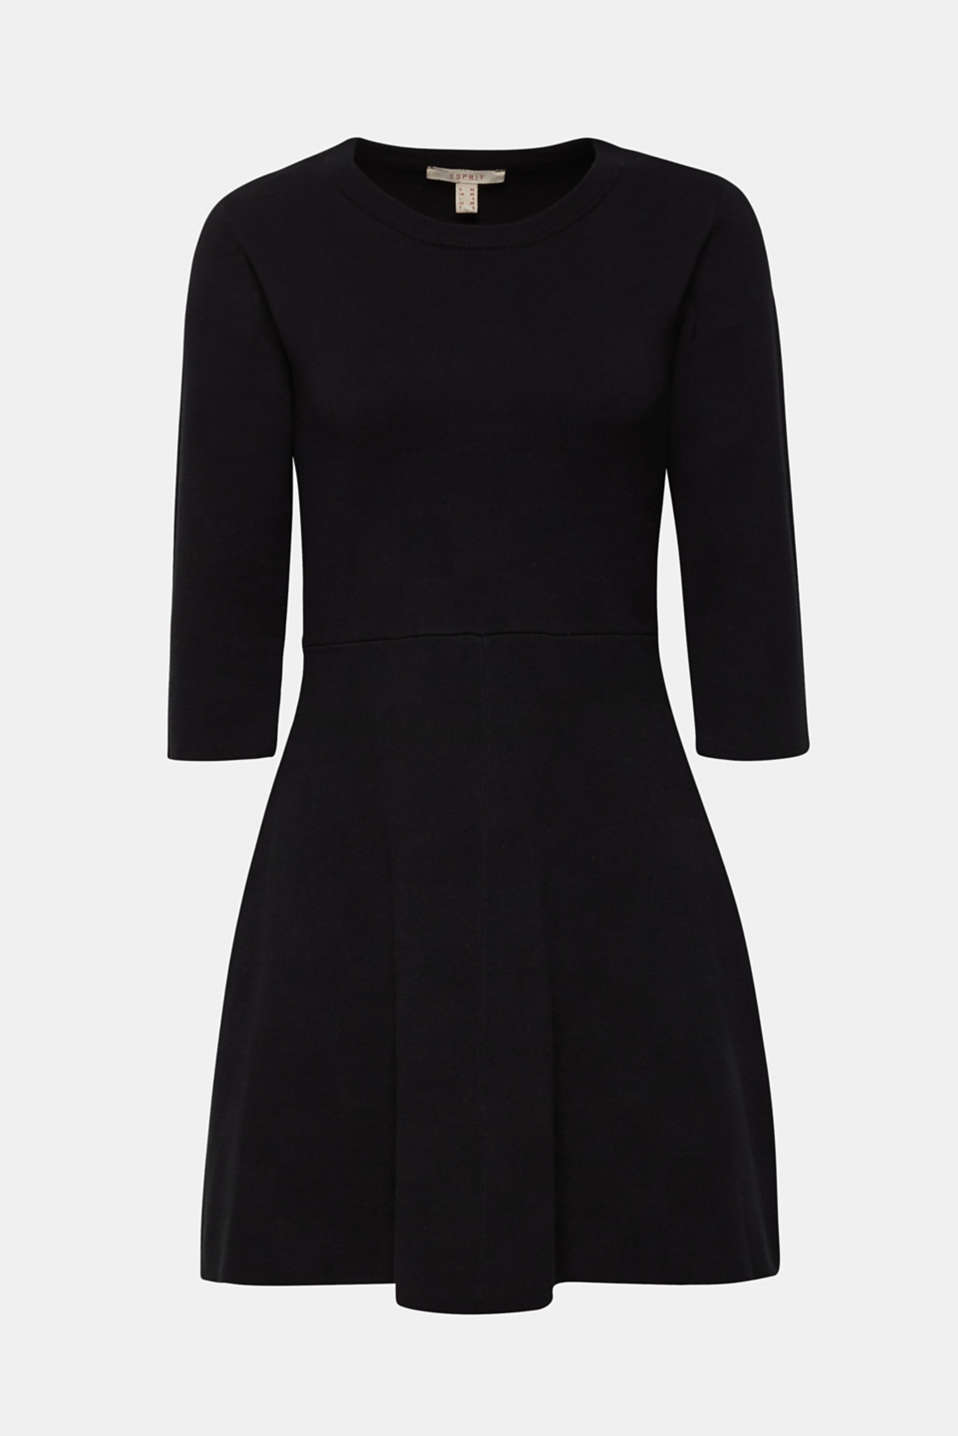 Compact knit dress in an A-line silhouette, BLACK, detail image number 4